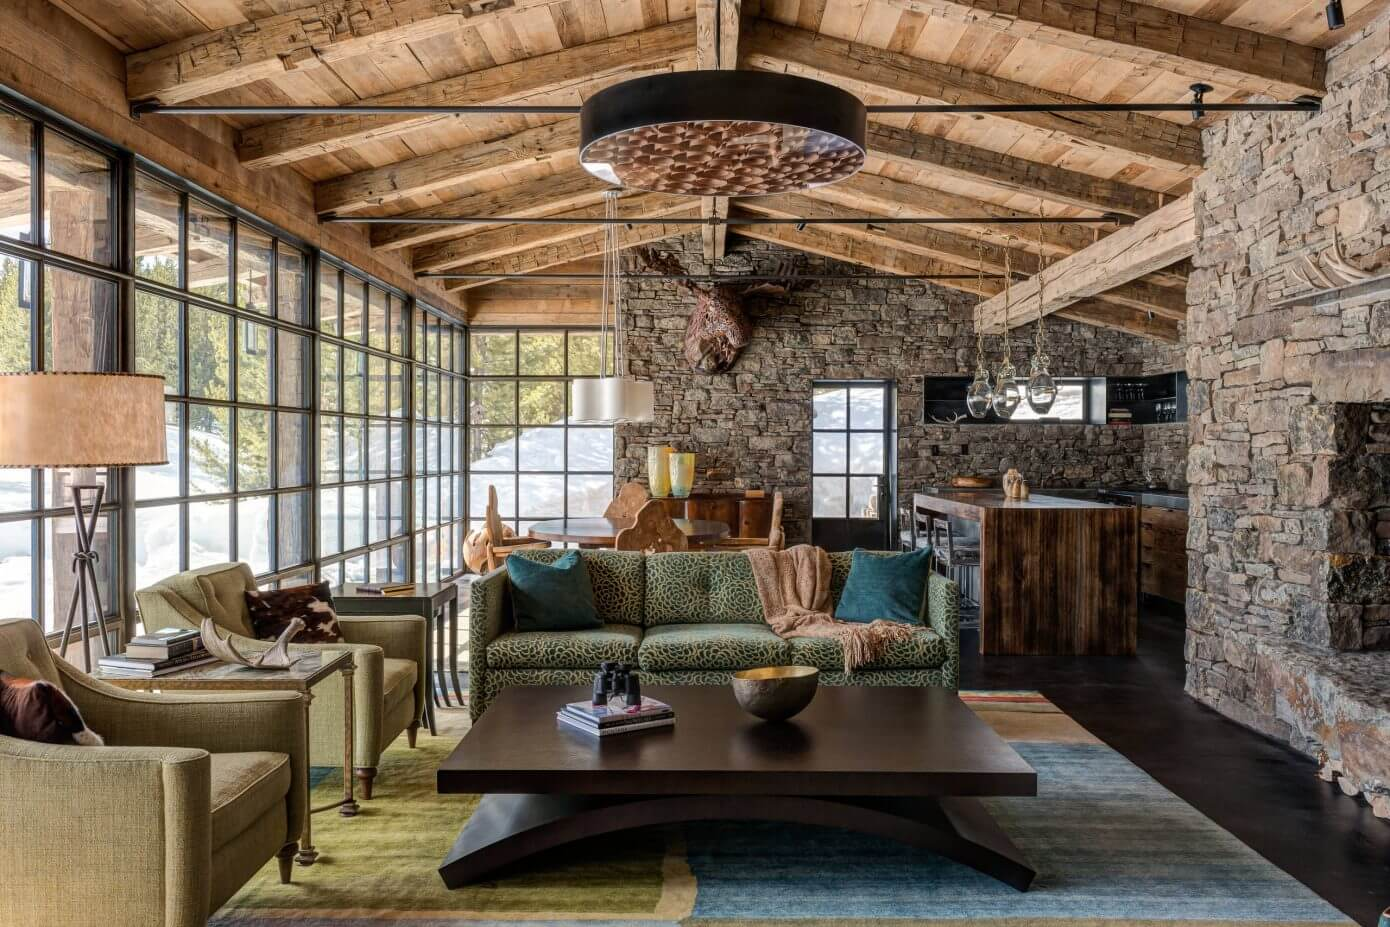 Camp run a muck cabin by pearson design group homeadore for Decoration interieur chalet montagne